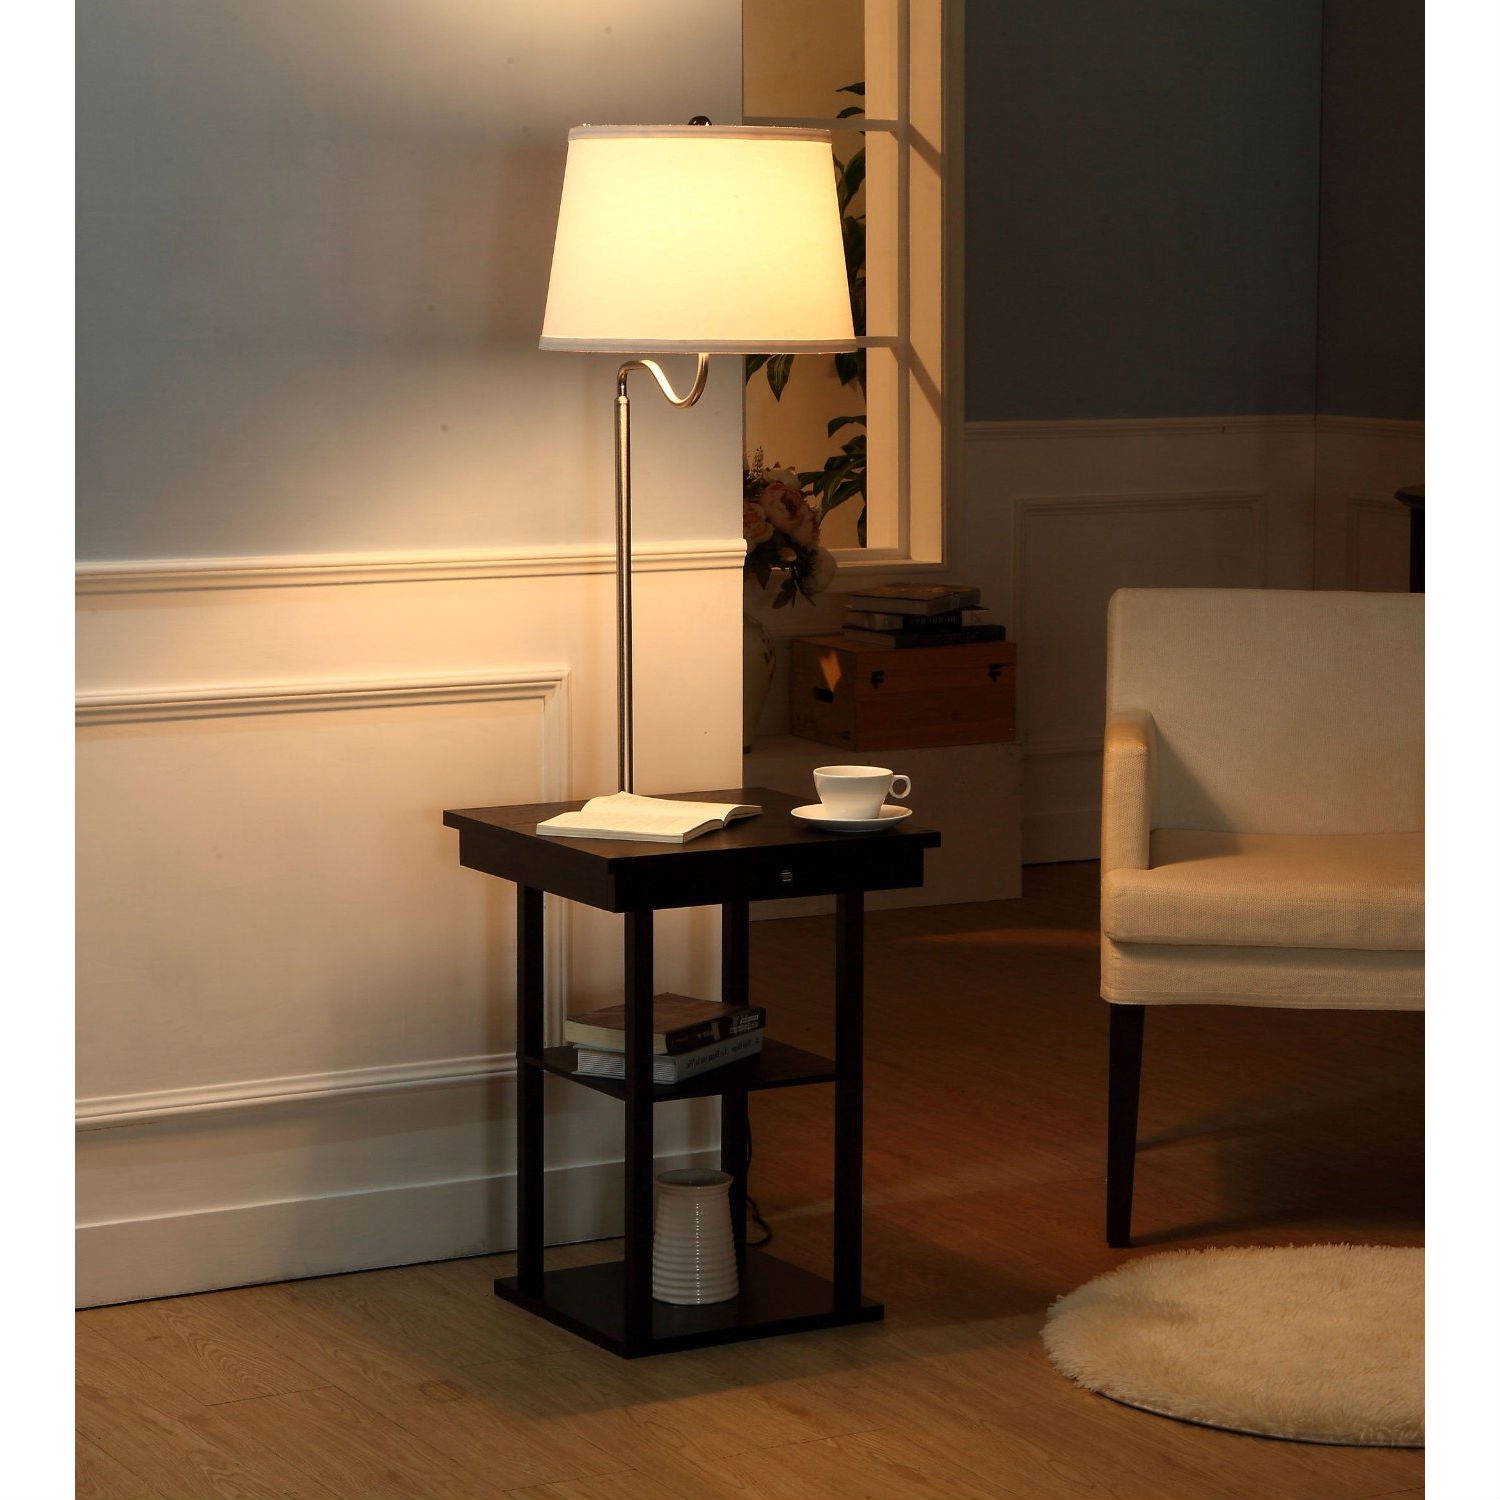 2 In1 Modern Side Table Floor Lamp With White Shade And